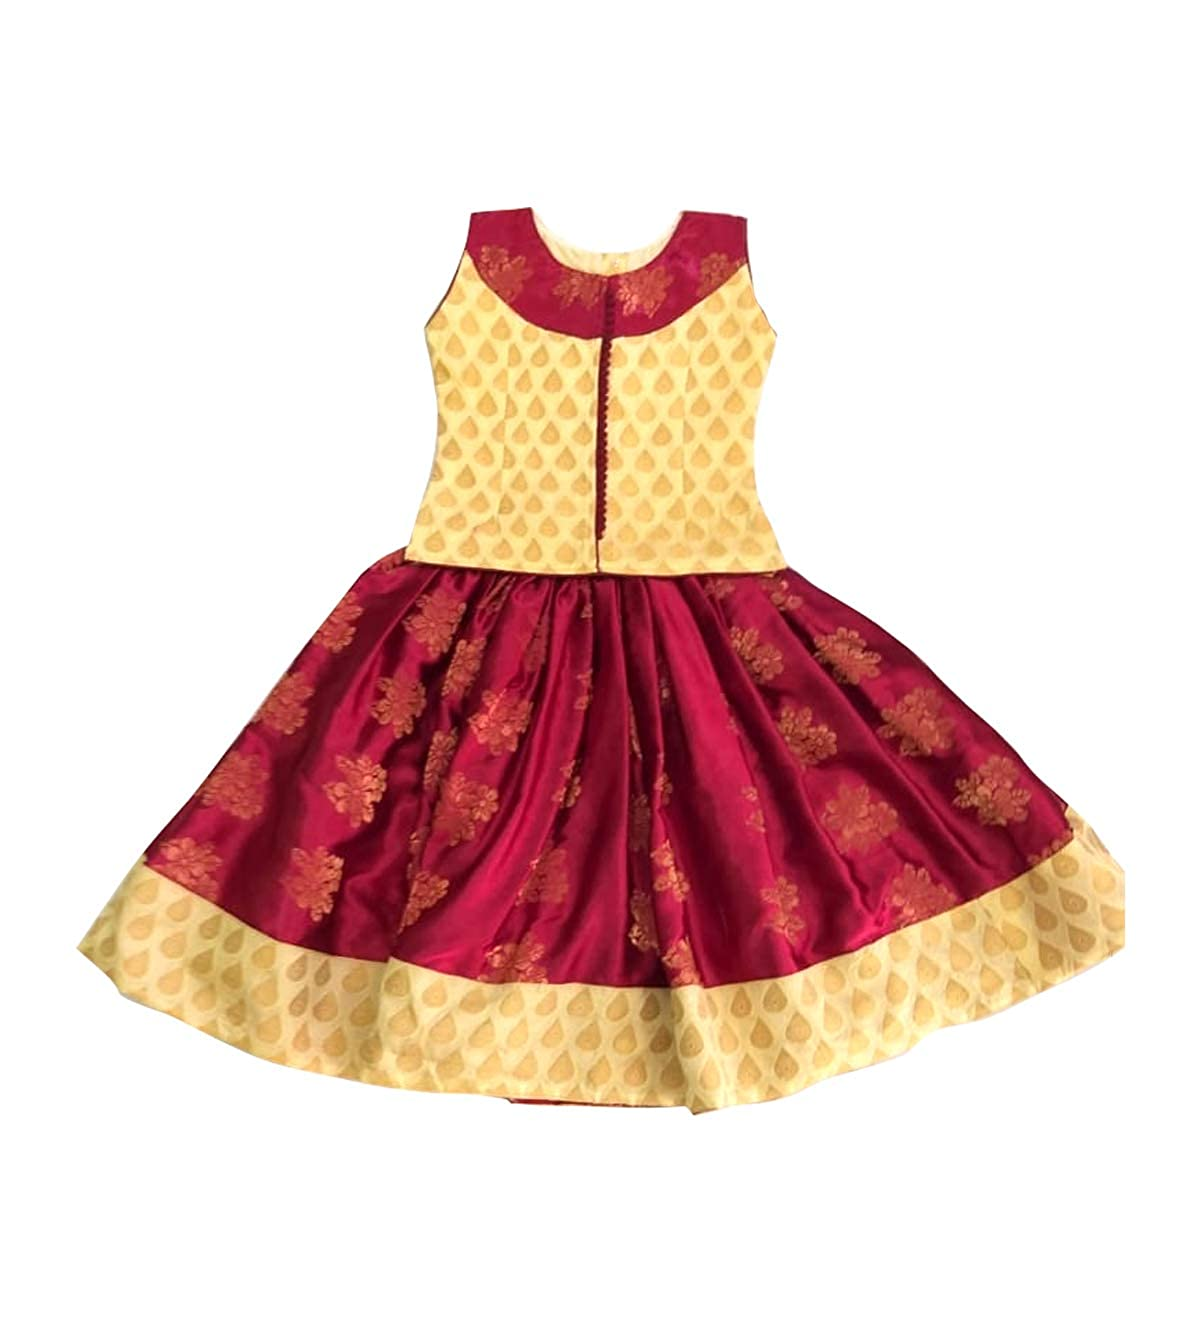 6df8a129815eae Pattu Pavadai Beautiful Maroon and Cream Designer Fancy Langa for Baby  Girls and Kids  Amazon.in  Clothing   Accessories